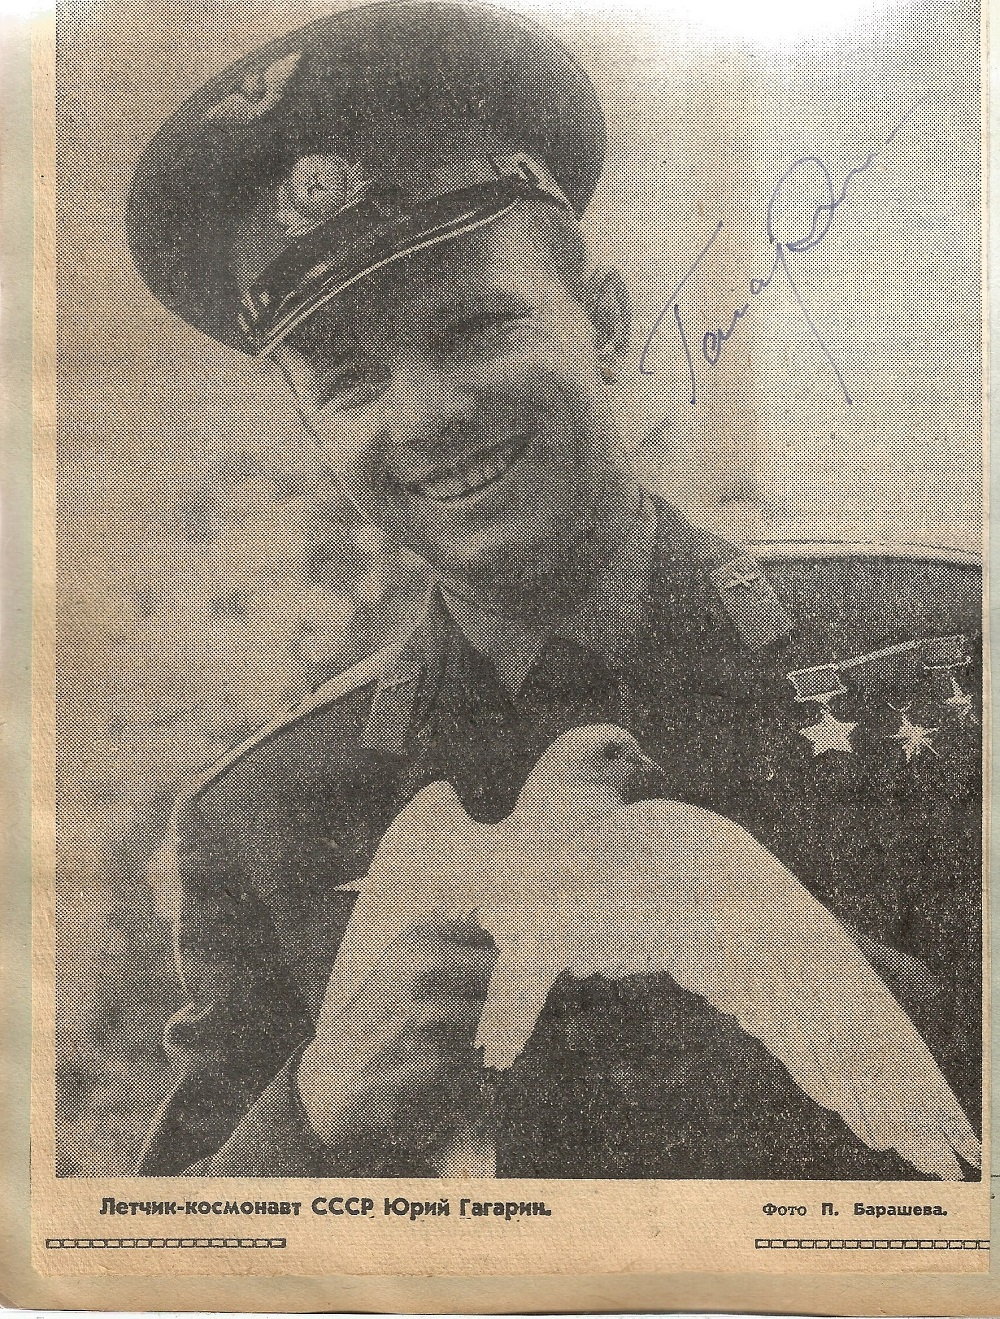 1950/60s Russian Cosmonauts multiple signed hard backed scrapbook compiled by a worker at Baikonur - Image 7 of 22